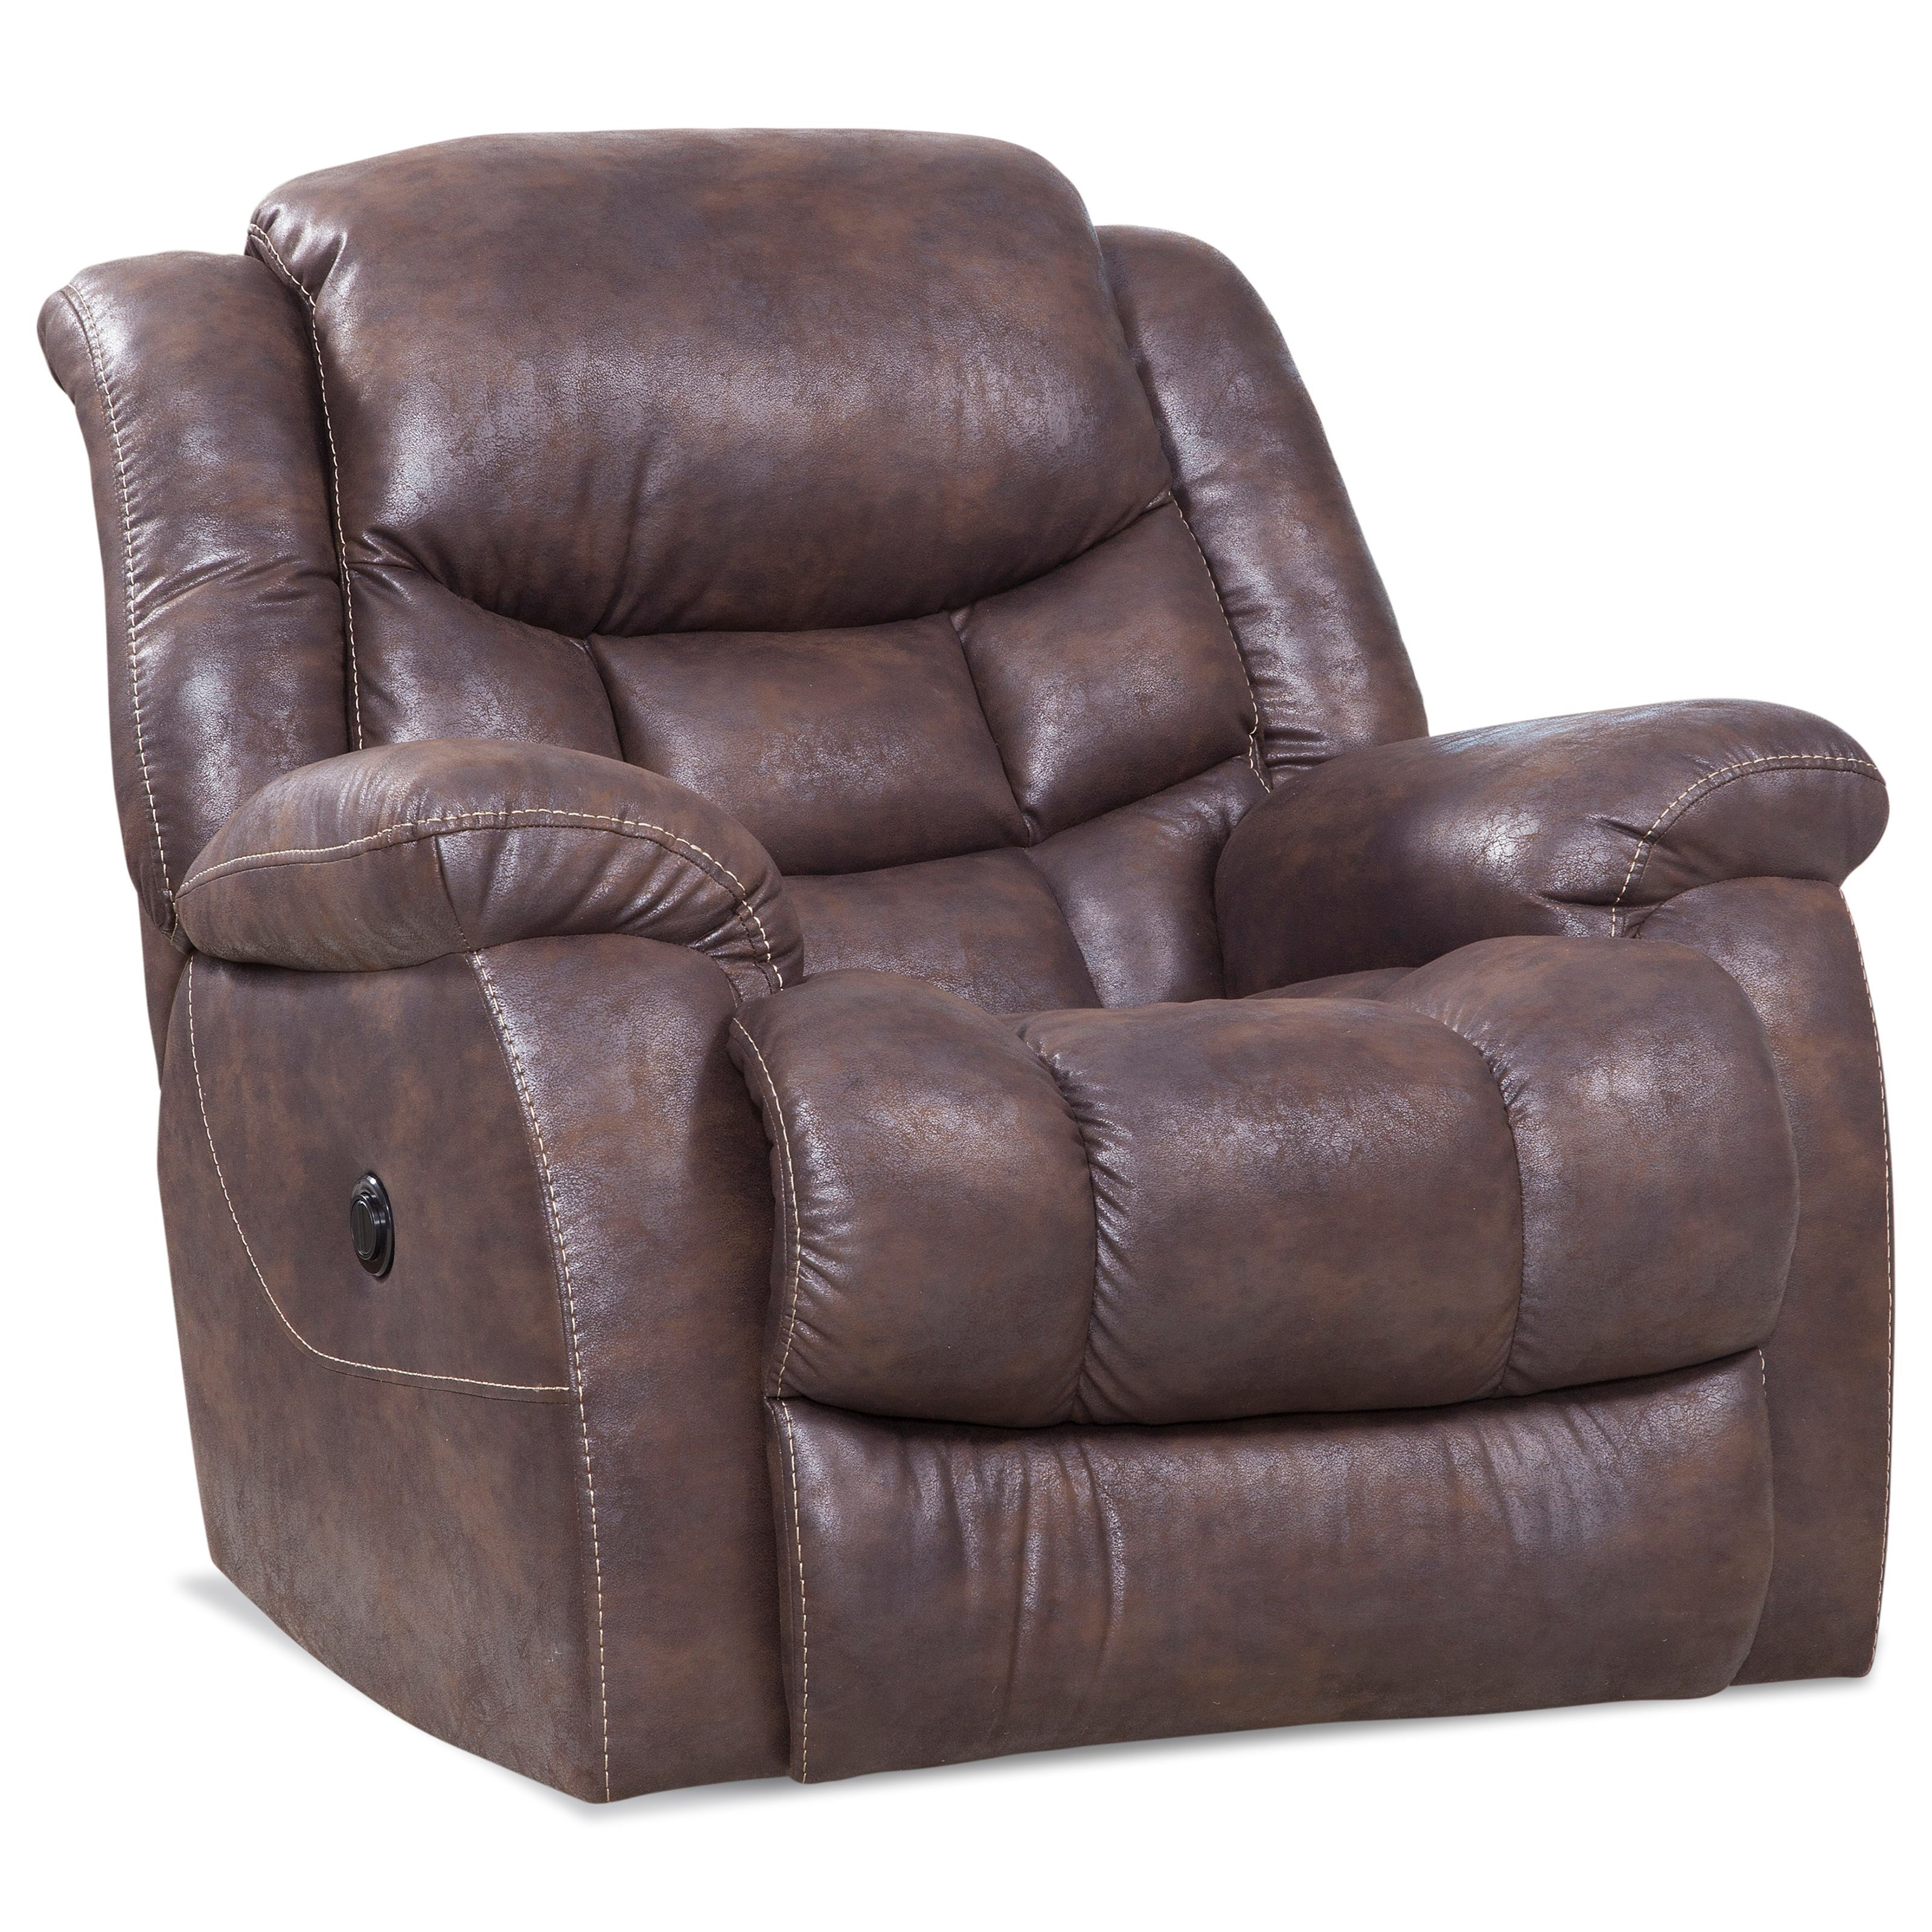 169 Power Rocker Recliner by HomeStretch at Standard Furniture